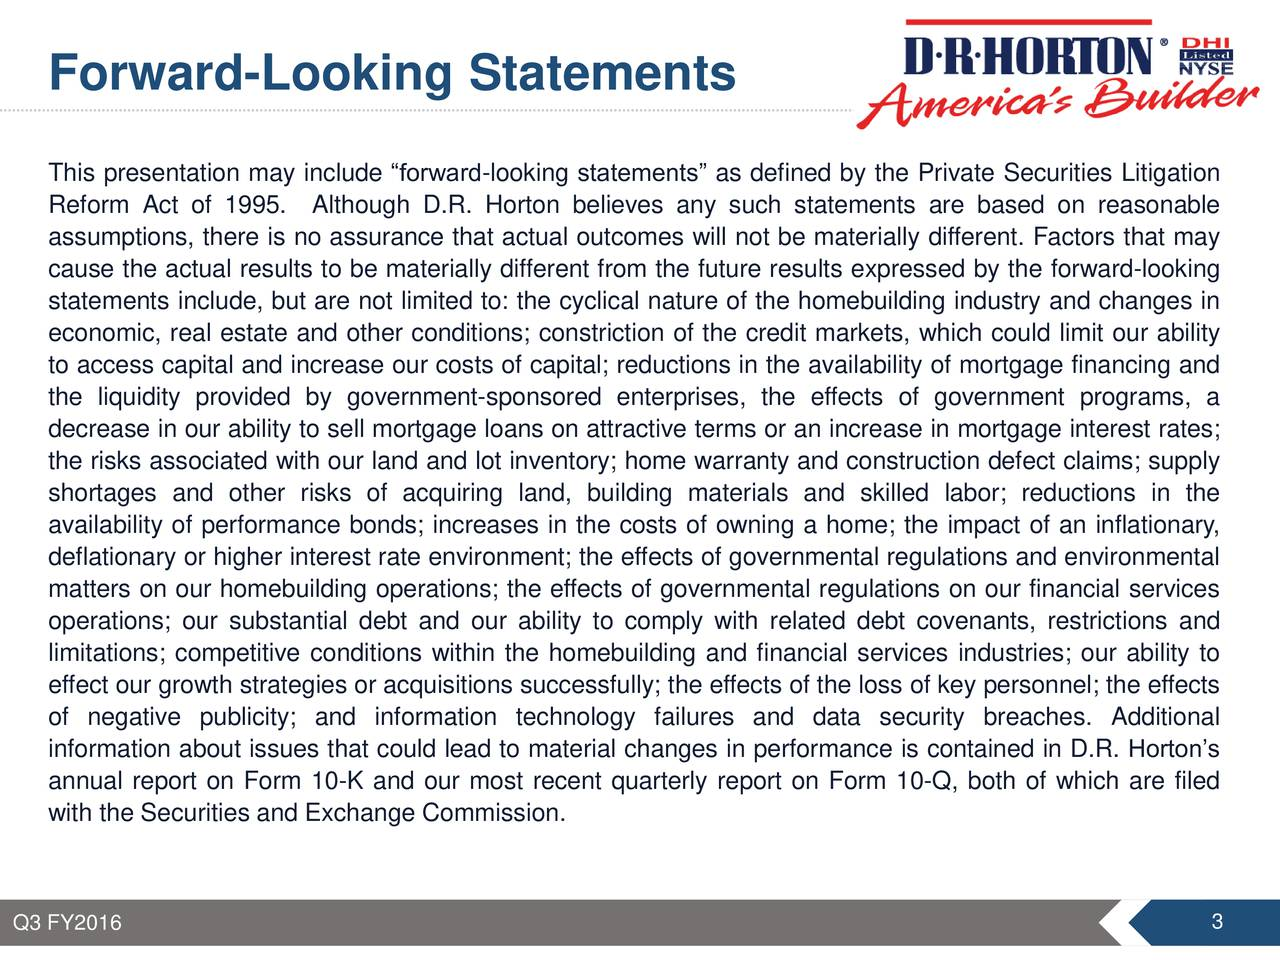 This presentation may include forward-looking statements as defined by the Private Securities Litigation Reform Act of 1995. Although D.R. Horton believes any such statements are based on reasonable assumptions, there is no assurance that actual outcomes will not be materially different. Factors that may cause the actual results to be materially different from the future results expressed by the forward-looking statements include, but are not limited to: the cyclical nature of the homebuilding industry and changes in economic, real estate and other conditions; constriction of the credit markets, which could limit our ability to access capital and increase our costs of capital; reductions in the availability of mortgage financing and the liquidity provided by government-sponsored enterprises, the effects of government programs, a decrease in our ability to sell mortgage loans on attractive terms or an increase in mortgage interest rates; the risks associated with our land and lot inventory; home warranty and construction defect claims; supply shortages and other risks of acquiring land, building materials and skilled labor; reductions in the availability of performance bonds; increases in the costs of owning a home; the impact of an inflationary, deflationary or higher interest rate environment; the effects of governmental regulations and environmental matters on our homebuilding operations; the effects of governmental regulations on our financial services operations; our substantial debt and our ability to comply with related debt covenants, restrictions and limitations; competitive conditions within the homebuilding and financial services industries; our ability to effect our growth strategies or acquisitions successfully; the effects of the loss of key personnel; the effects of negative publicity; and information technology failures and data security breaches. Additional information about issues that could lead to material changes in performance is contained in D.